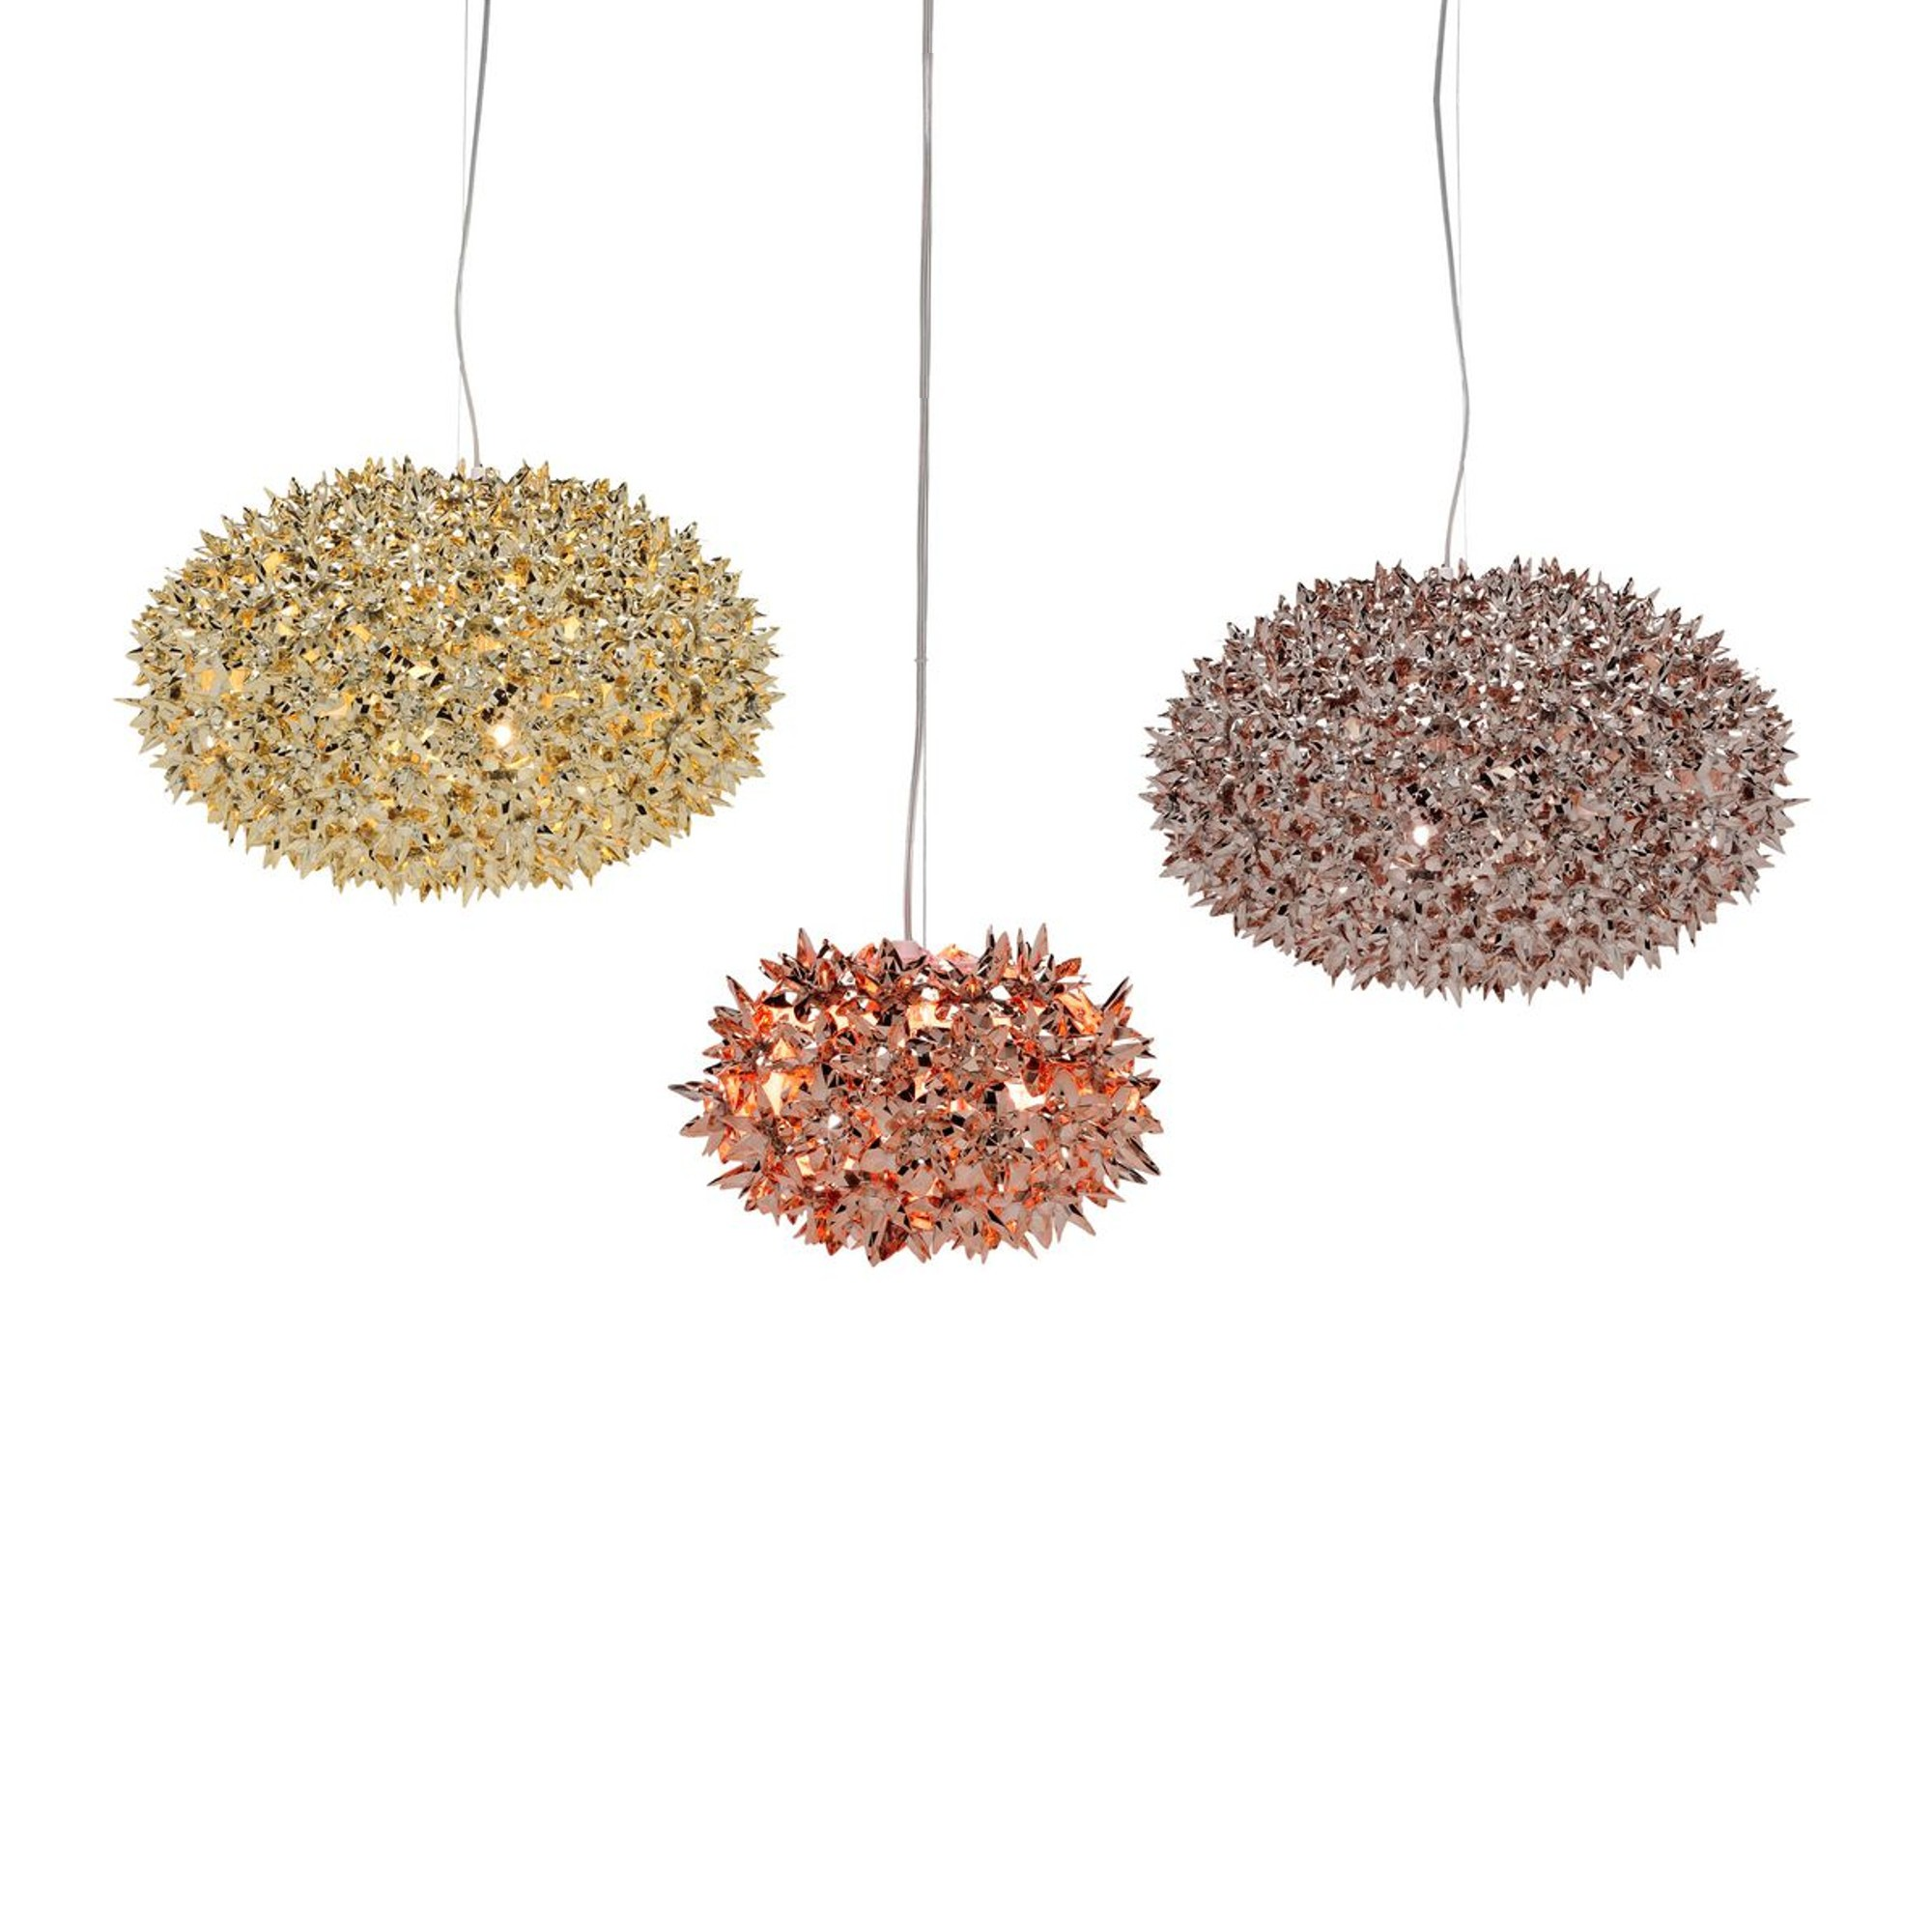 BLOOM NEW SUSPENSION LAMP, by KARTELL